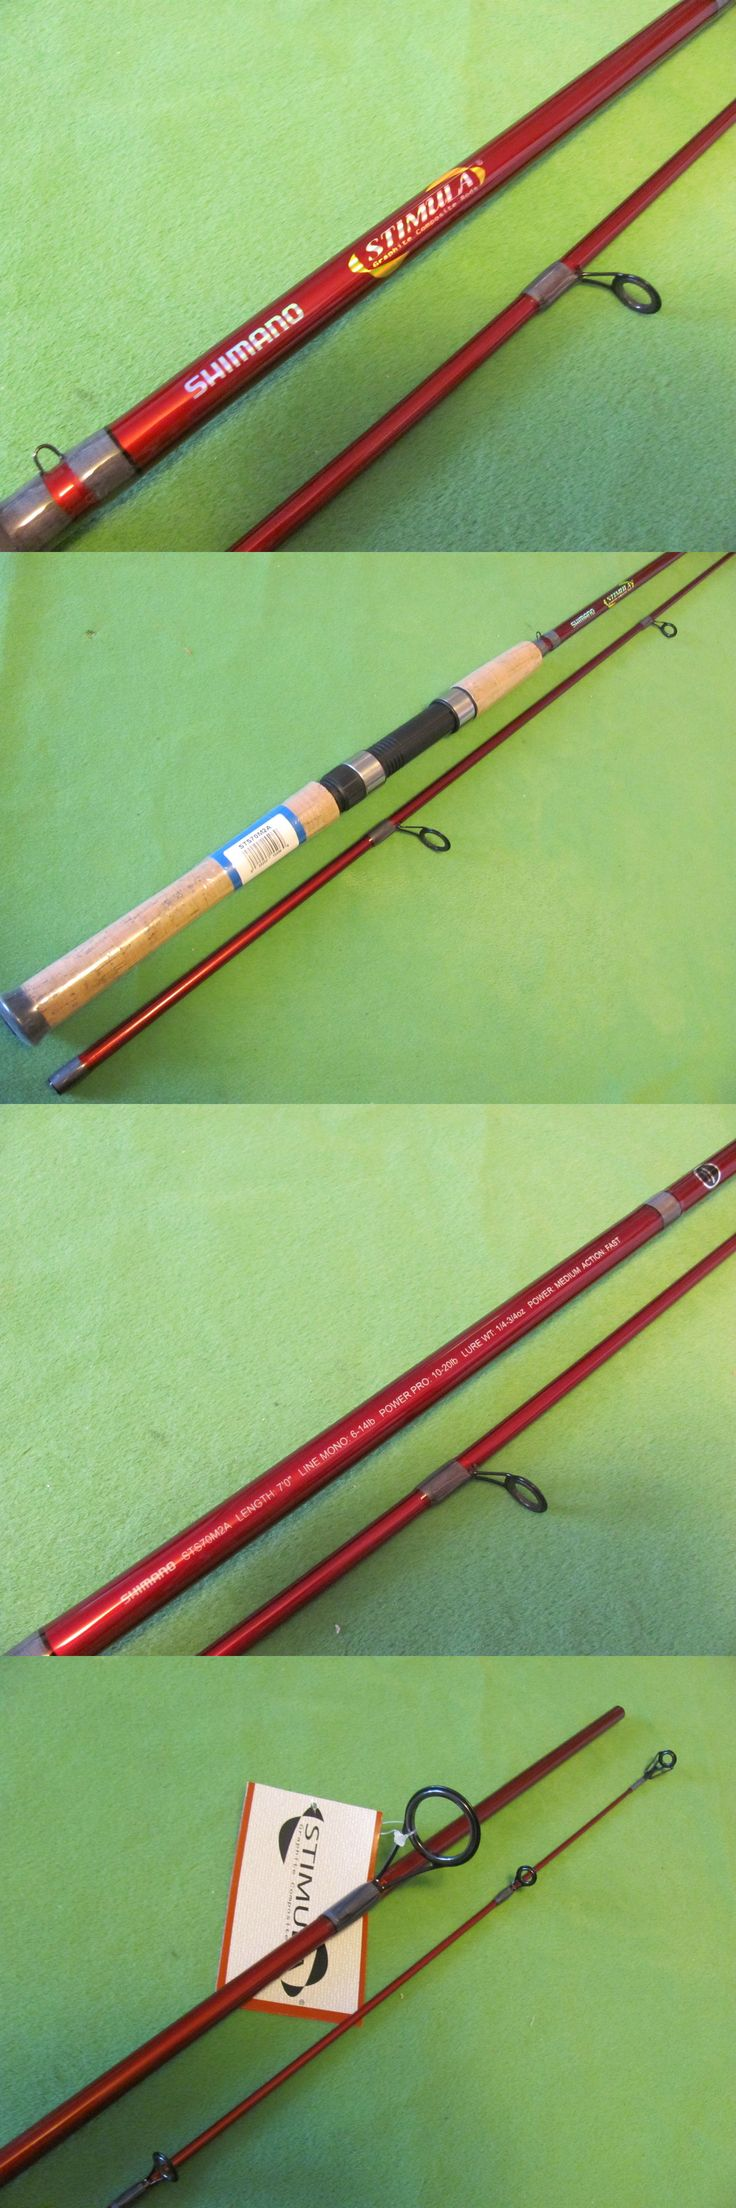 Spinning Rods 36150: Shimano Stimula 7 0 Medium Action Fast Spinning Rod.New.( Sts70m2a ) BUY IT NOW ONLY: $42.95